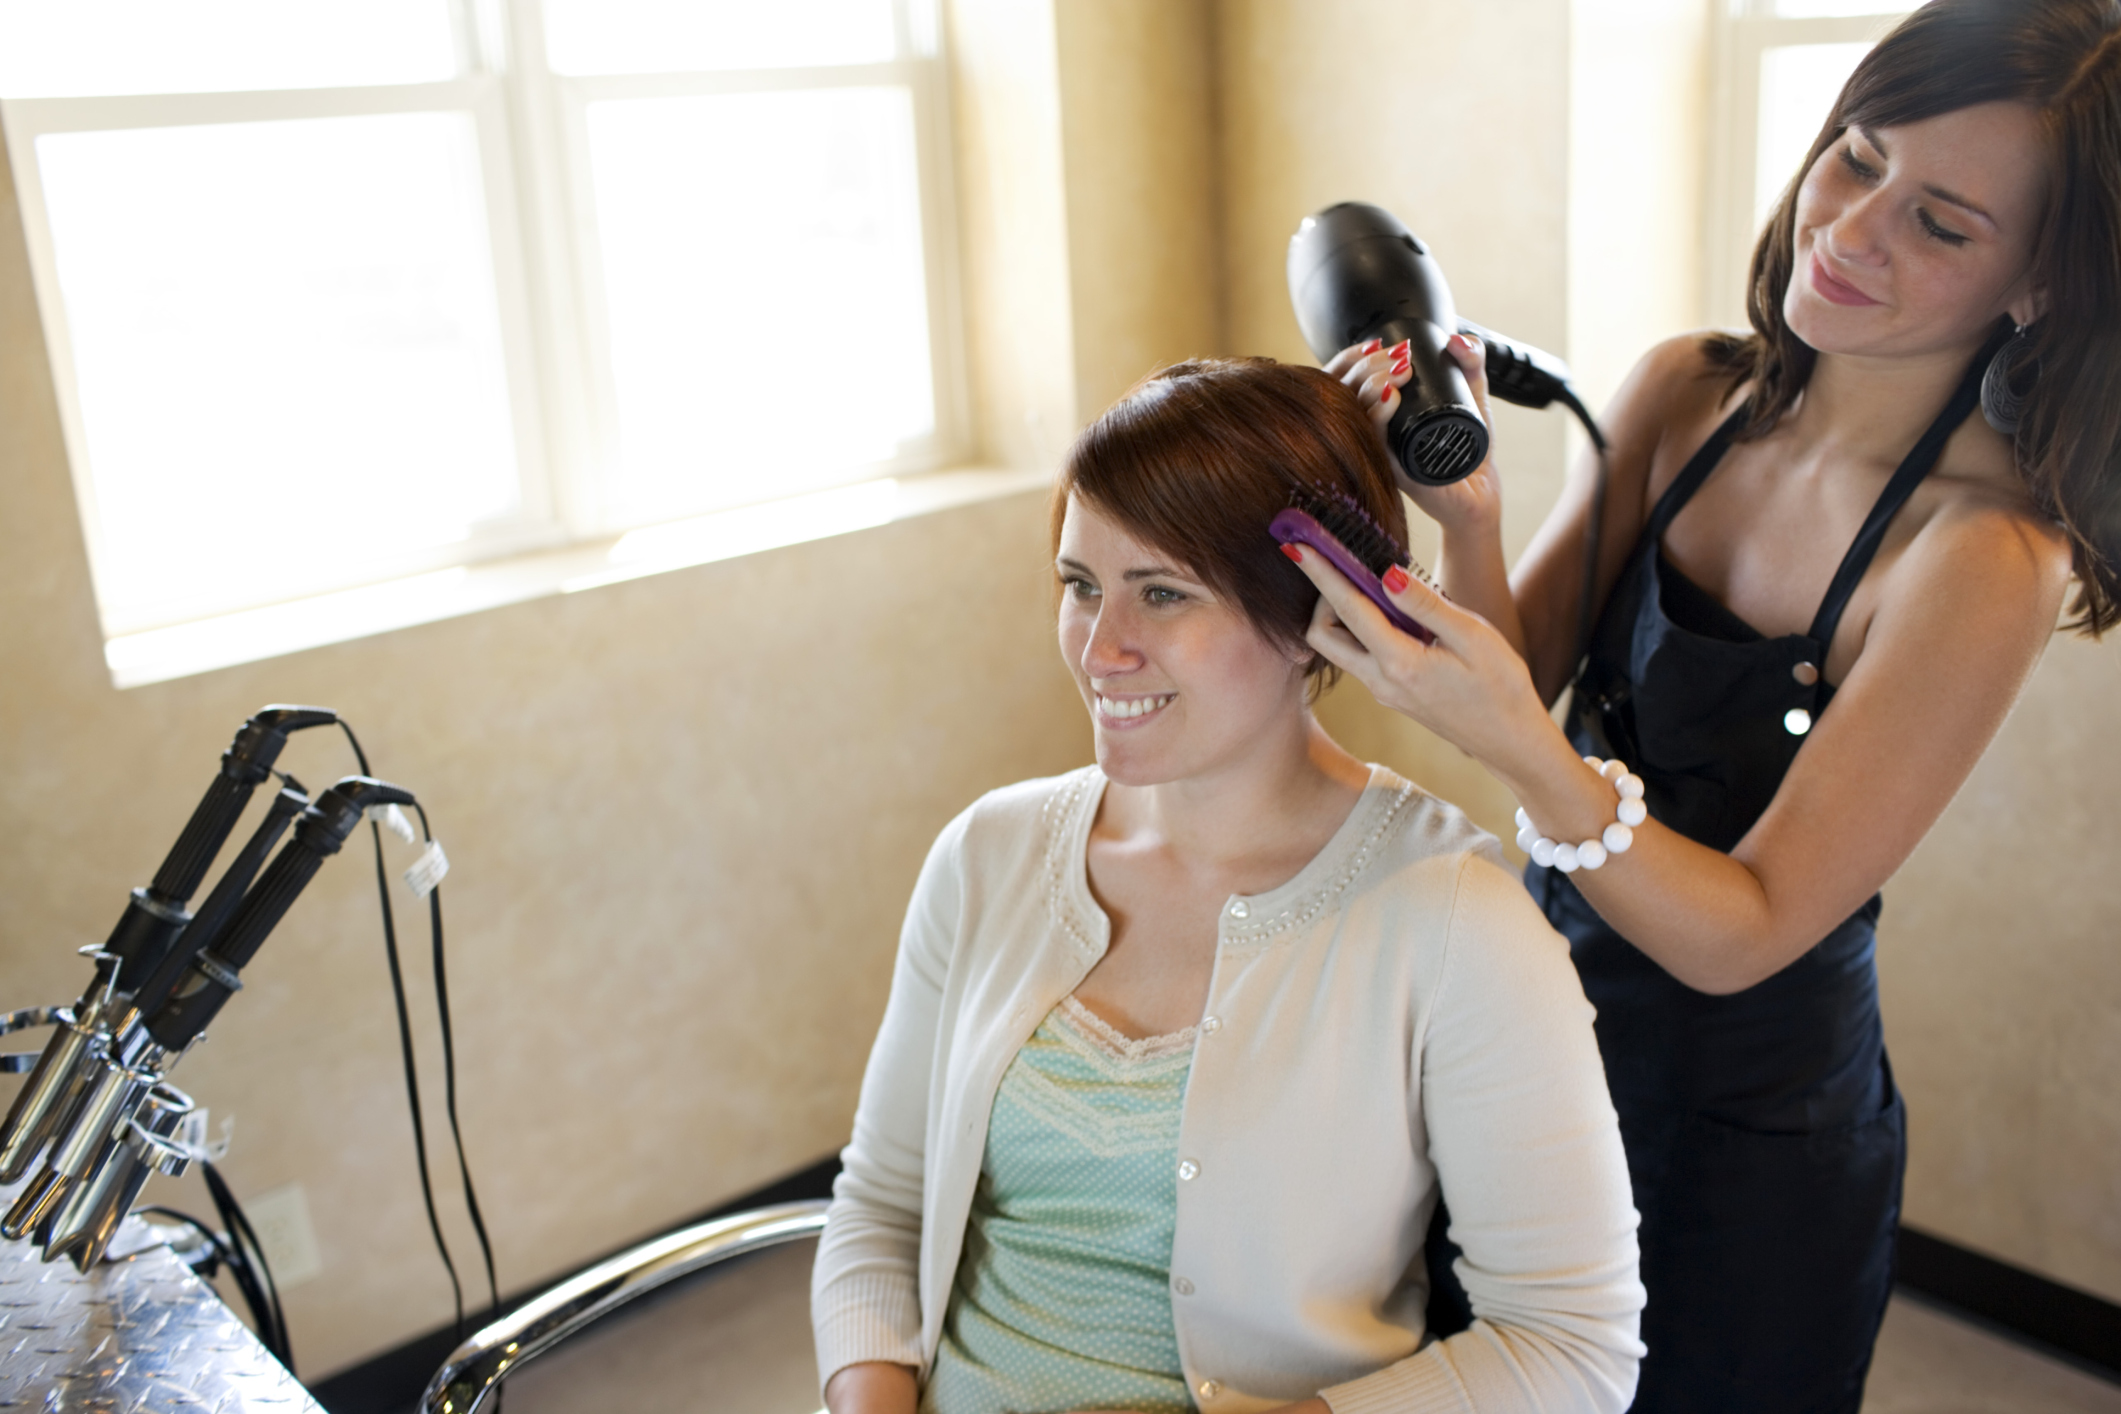 Courses for hairdressers - study colors